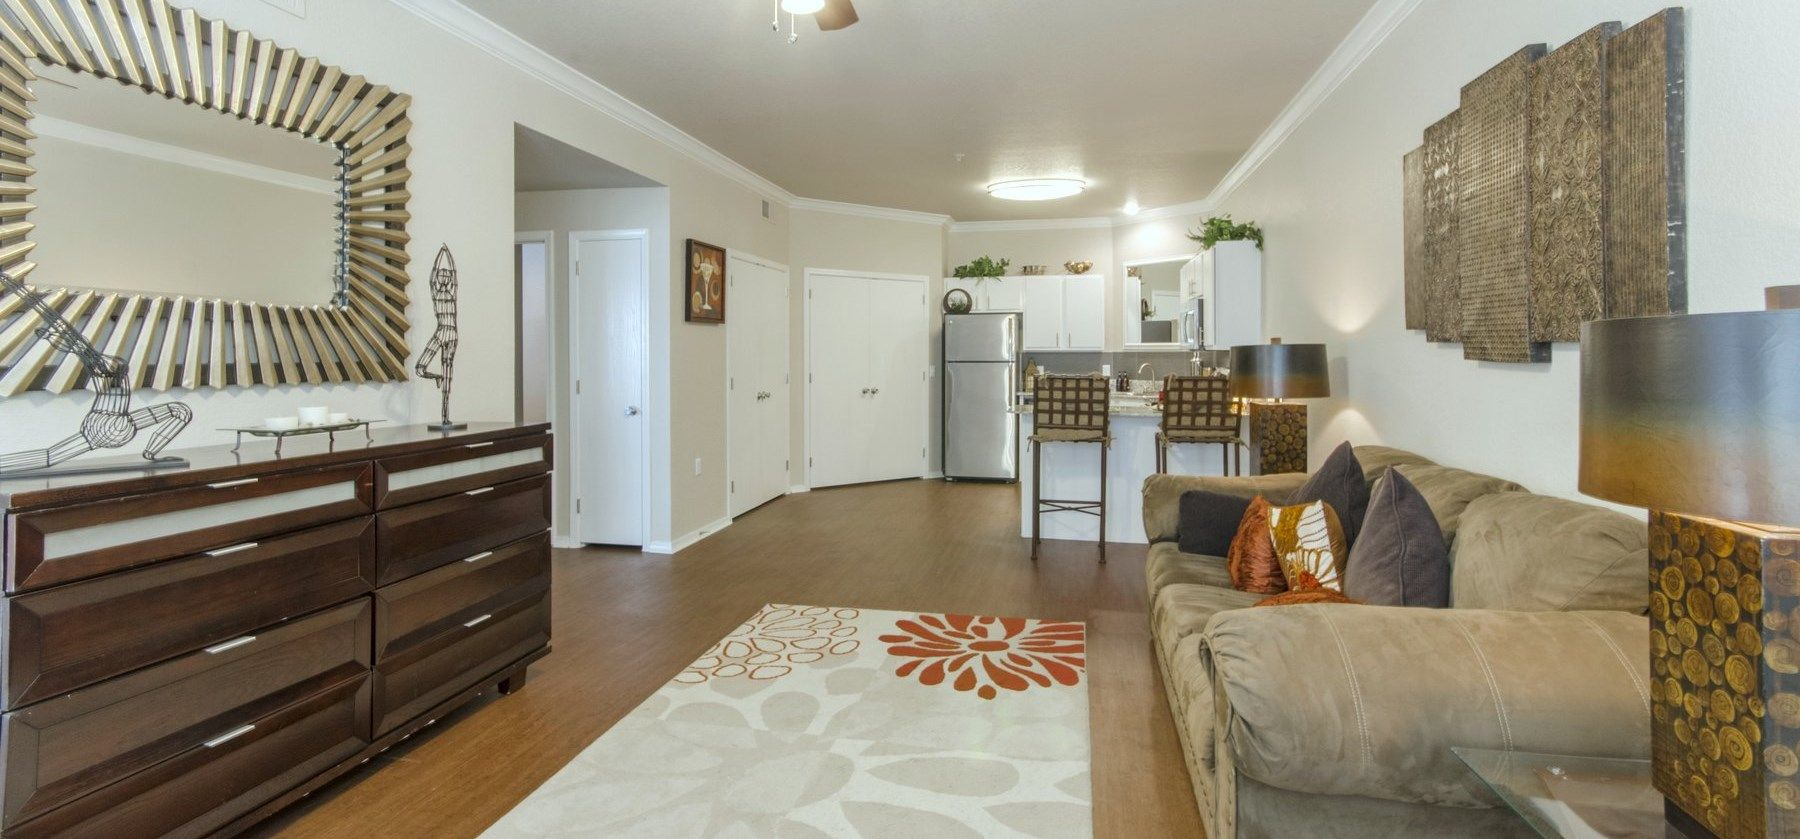 Timberlinks At Denton Apartments In Denton Tx Renting A House Apartment Cool Apartments